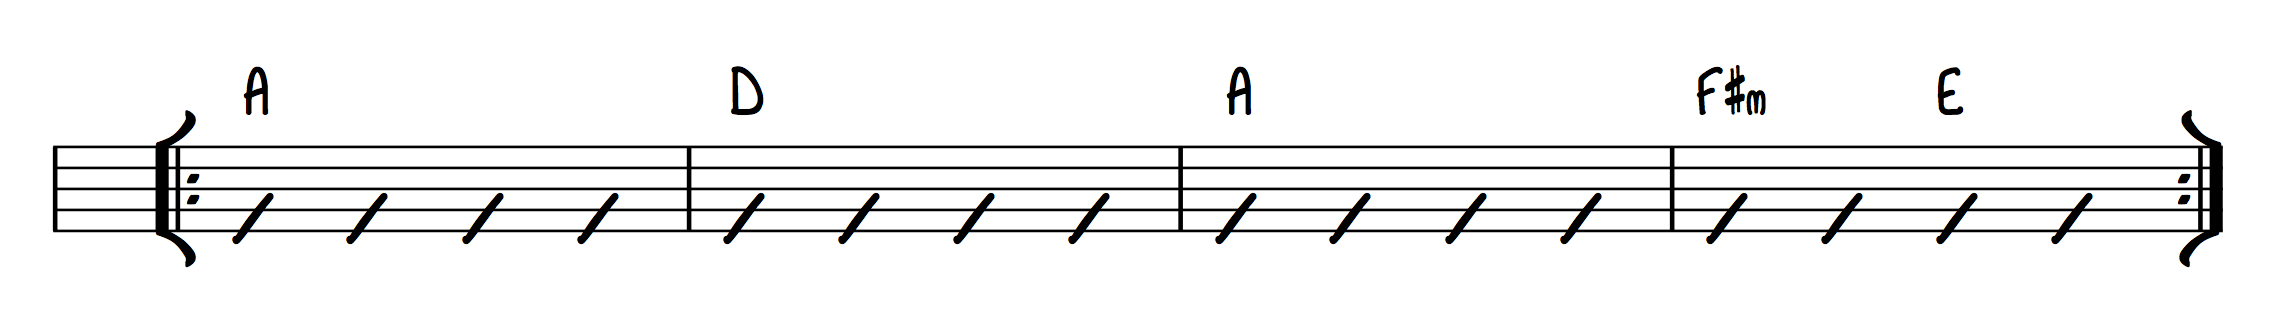 Chord Exercise 3